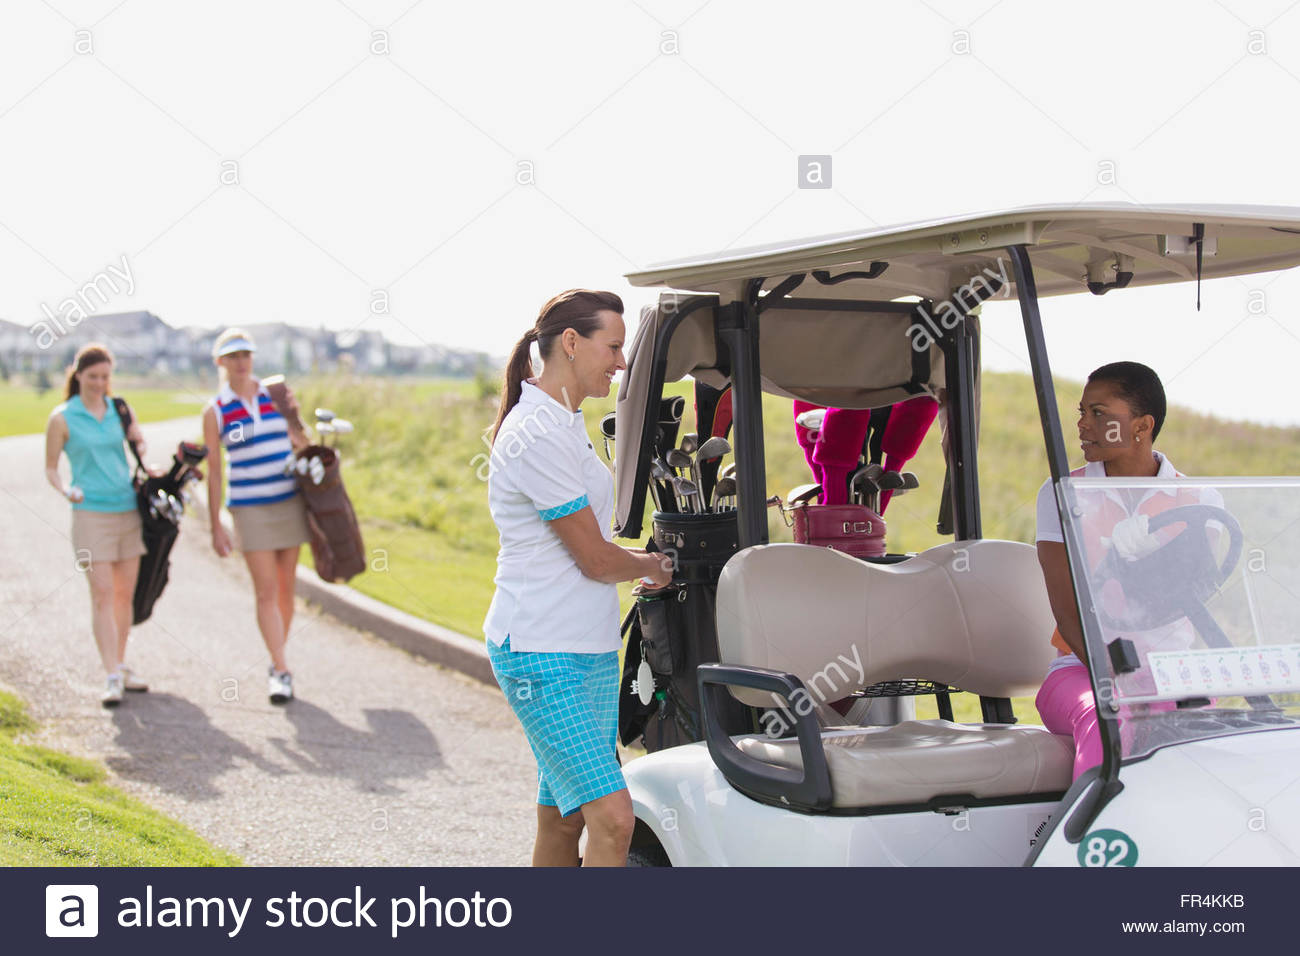 foursome of female golfers with golf cart - Stock Image